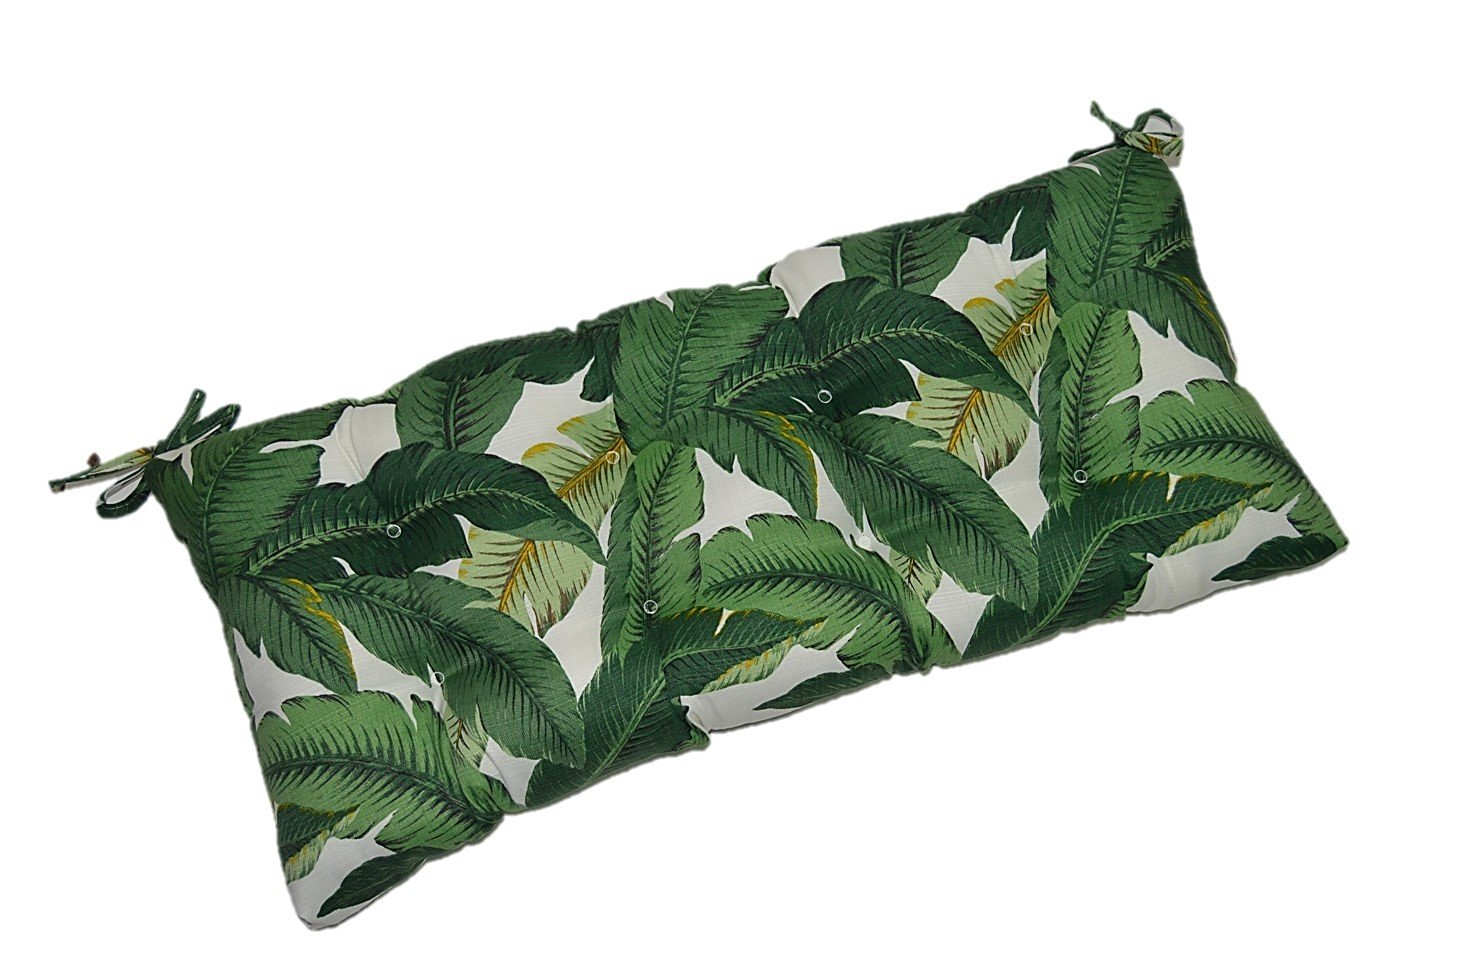 """Indoor / Outdoor Tufted Cushion for Bench, Swing, or Glider - Tommy Bahama Swaying Palms - Aloe - Green Tropical Palm Leaf - Choose / Select Size (60"""" X 18"""")"""